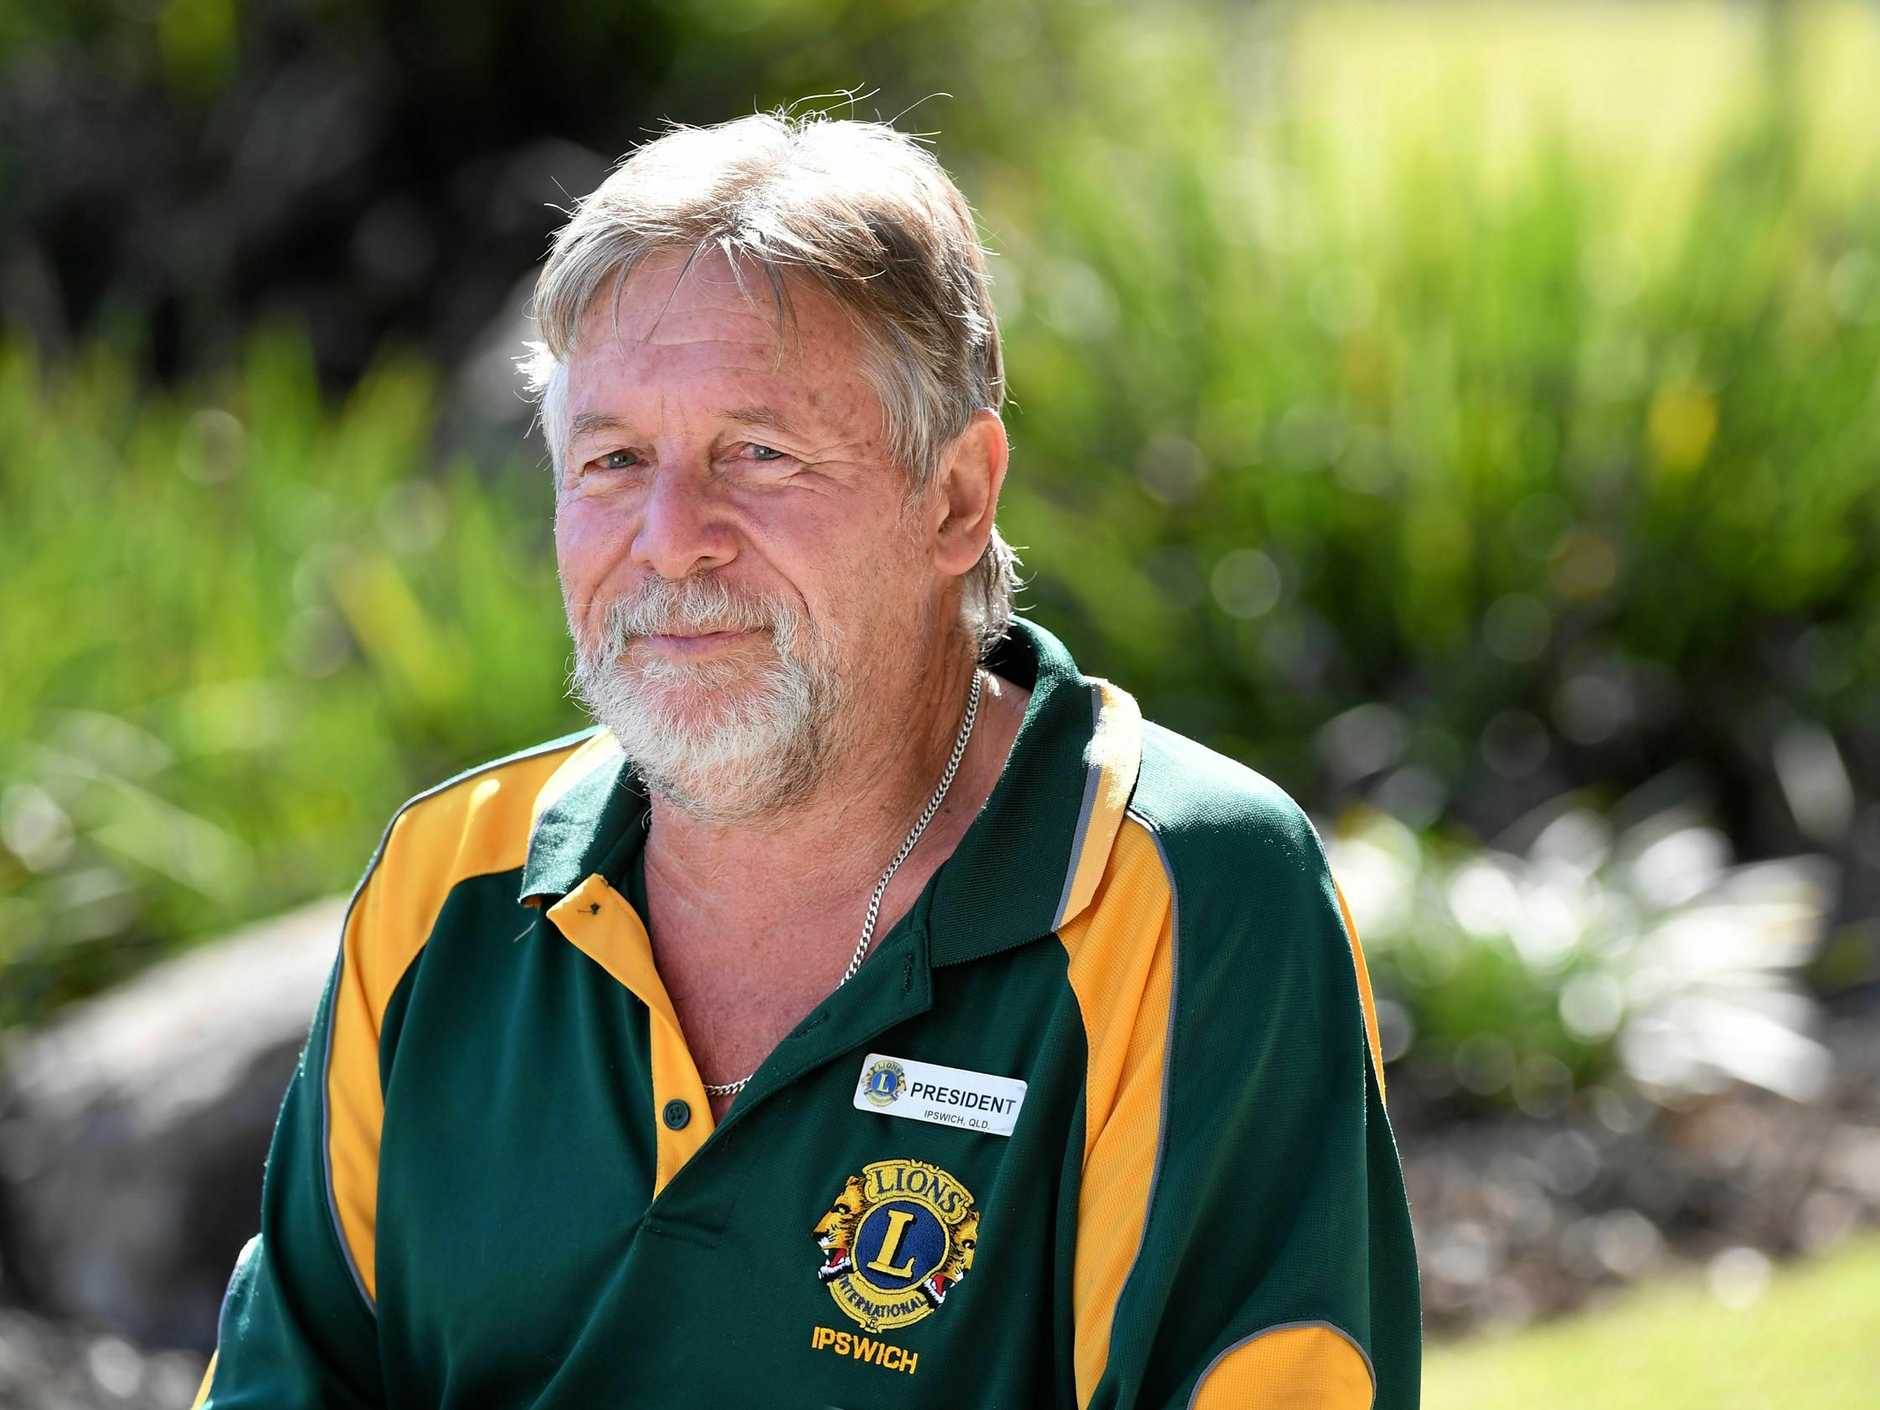 COMMUNITY MINDED: Ipswich Lions Club president Jim Wright has received the Melvin Jones Award.